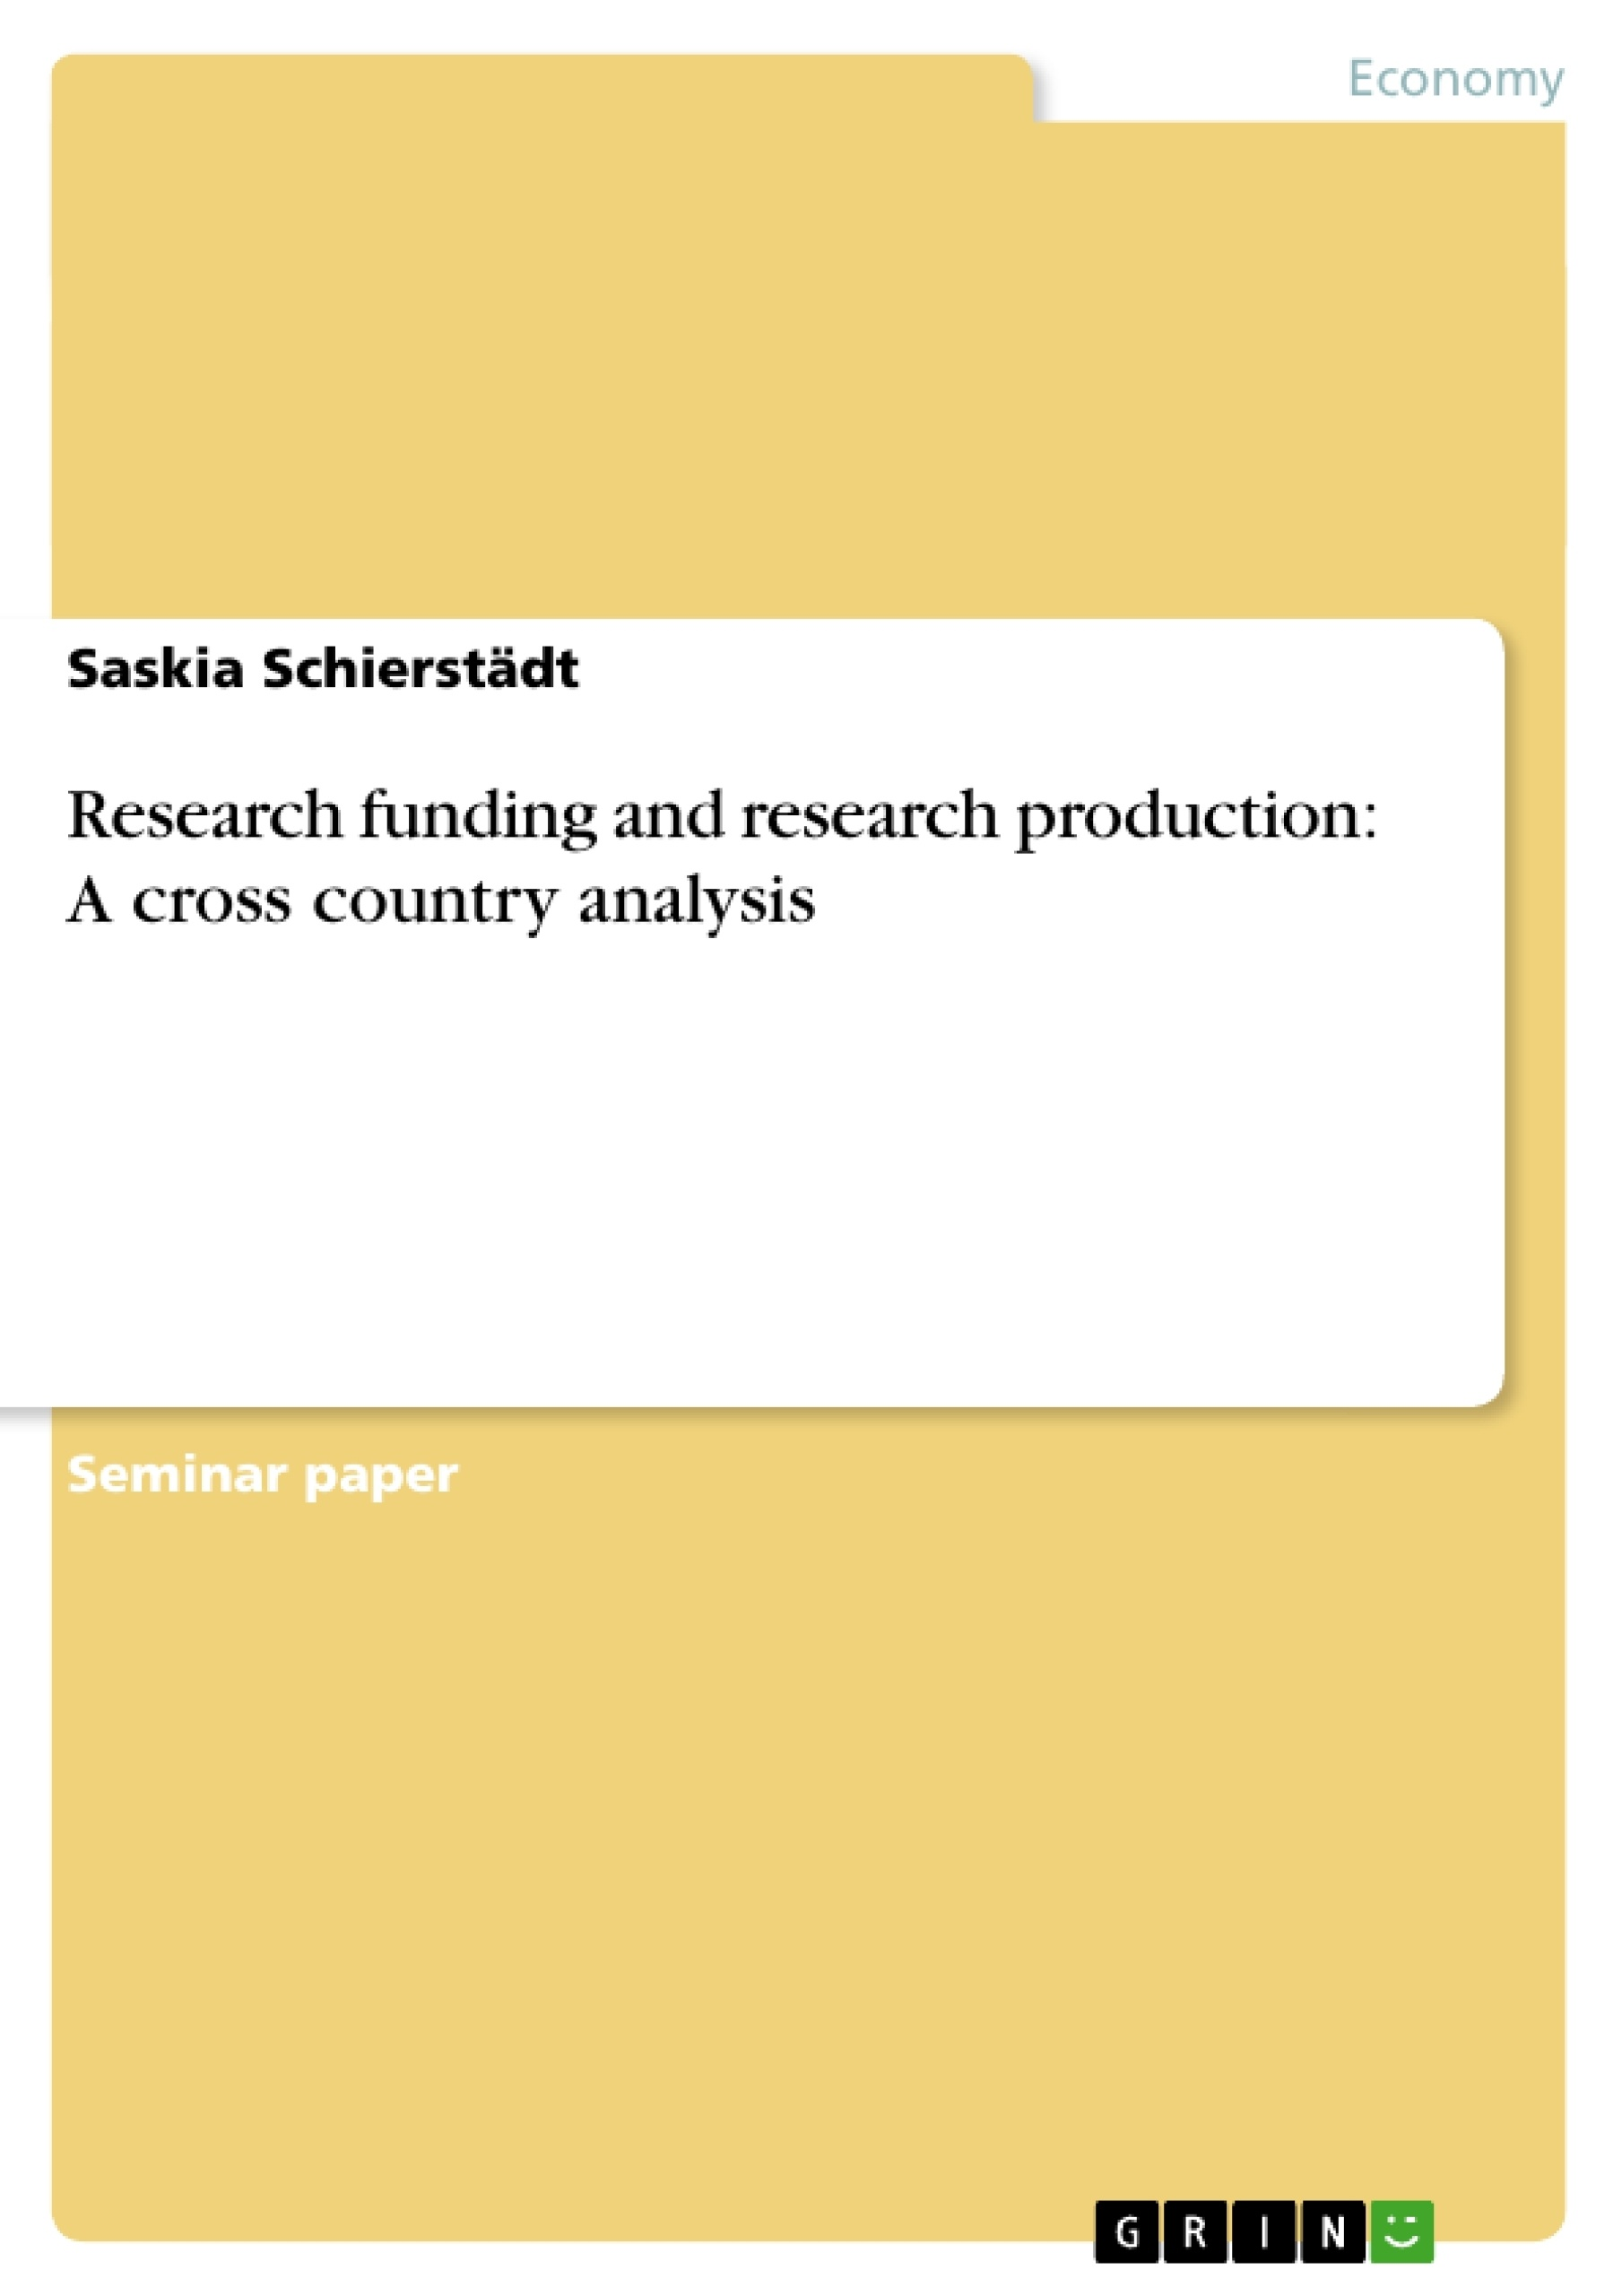 Title: Research funding and research production: A cross country analysis